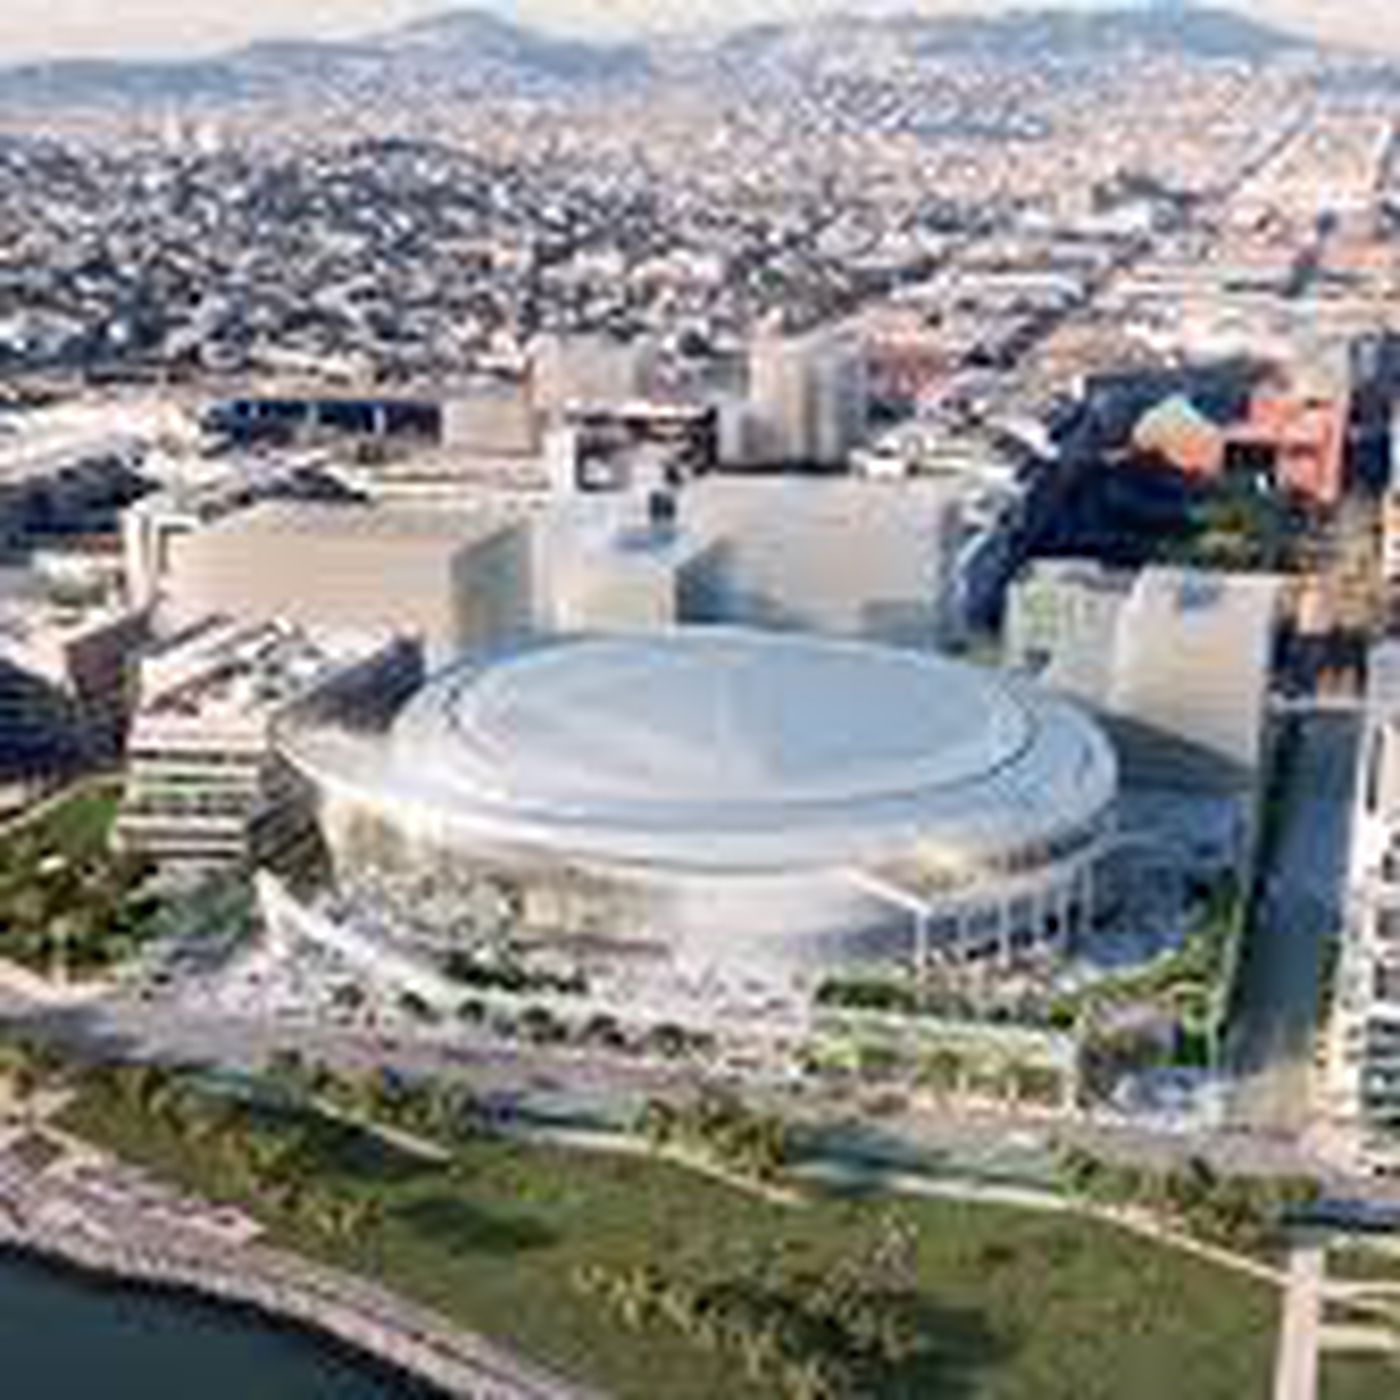 BREAKING: UCSF officially endorses Mission Bay Arena